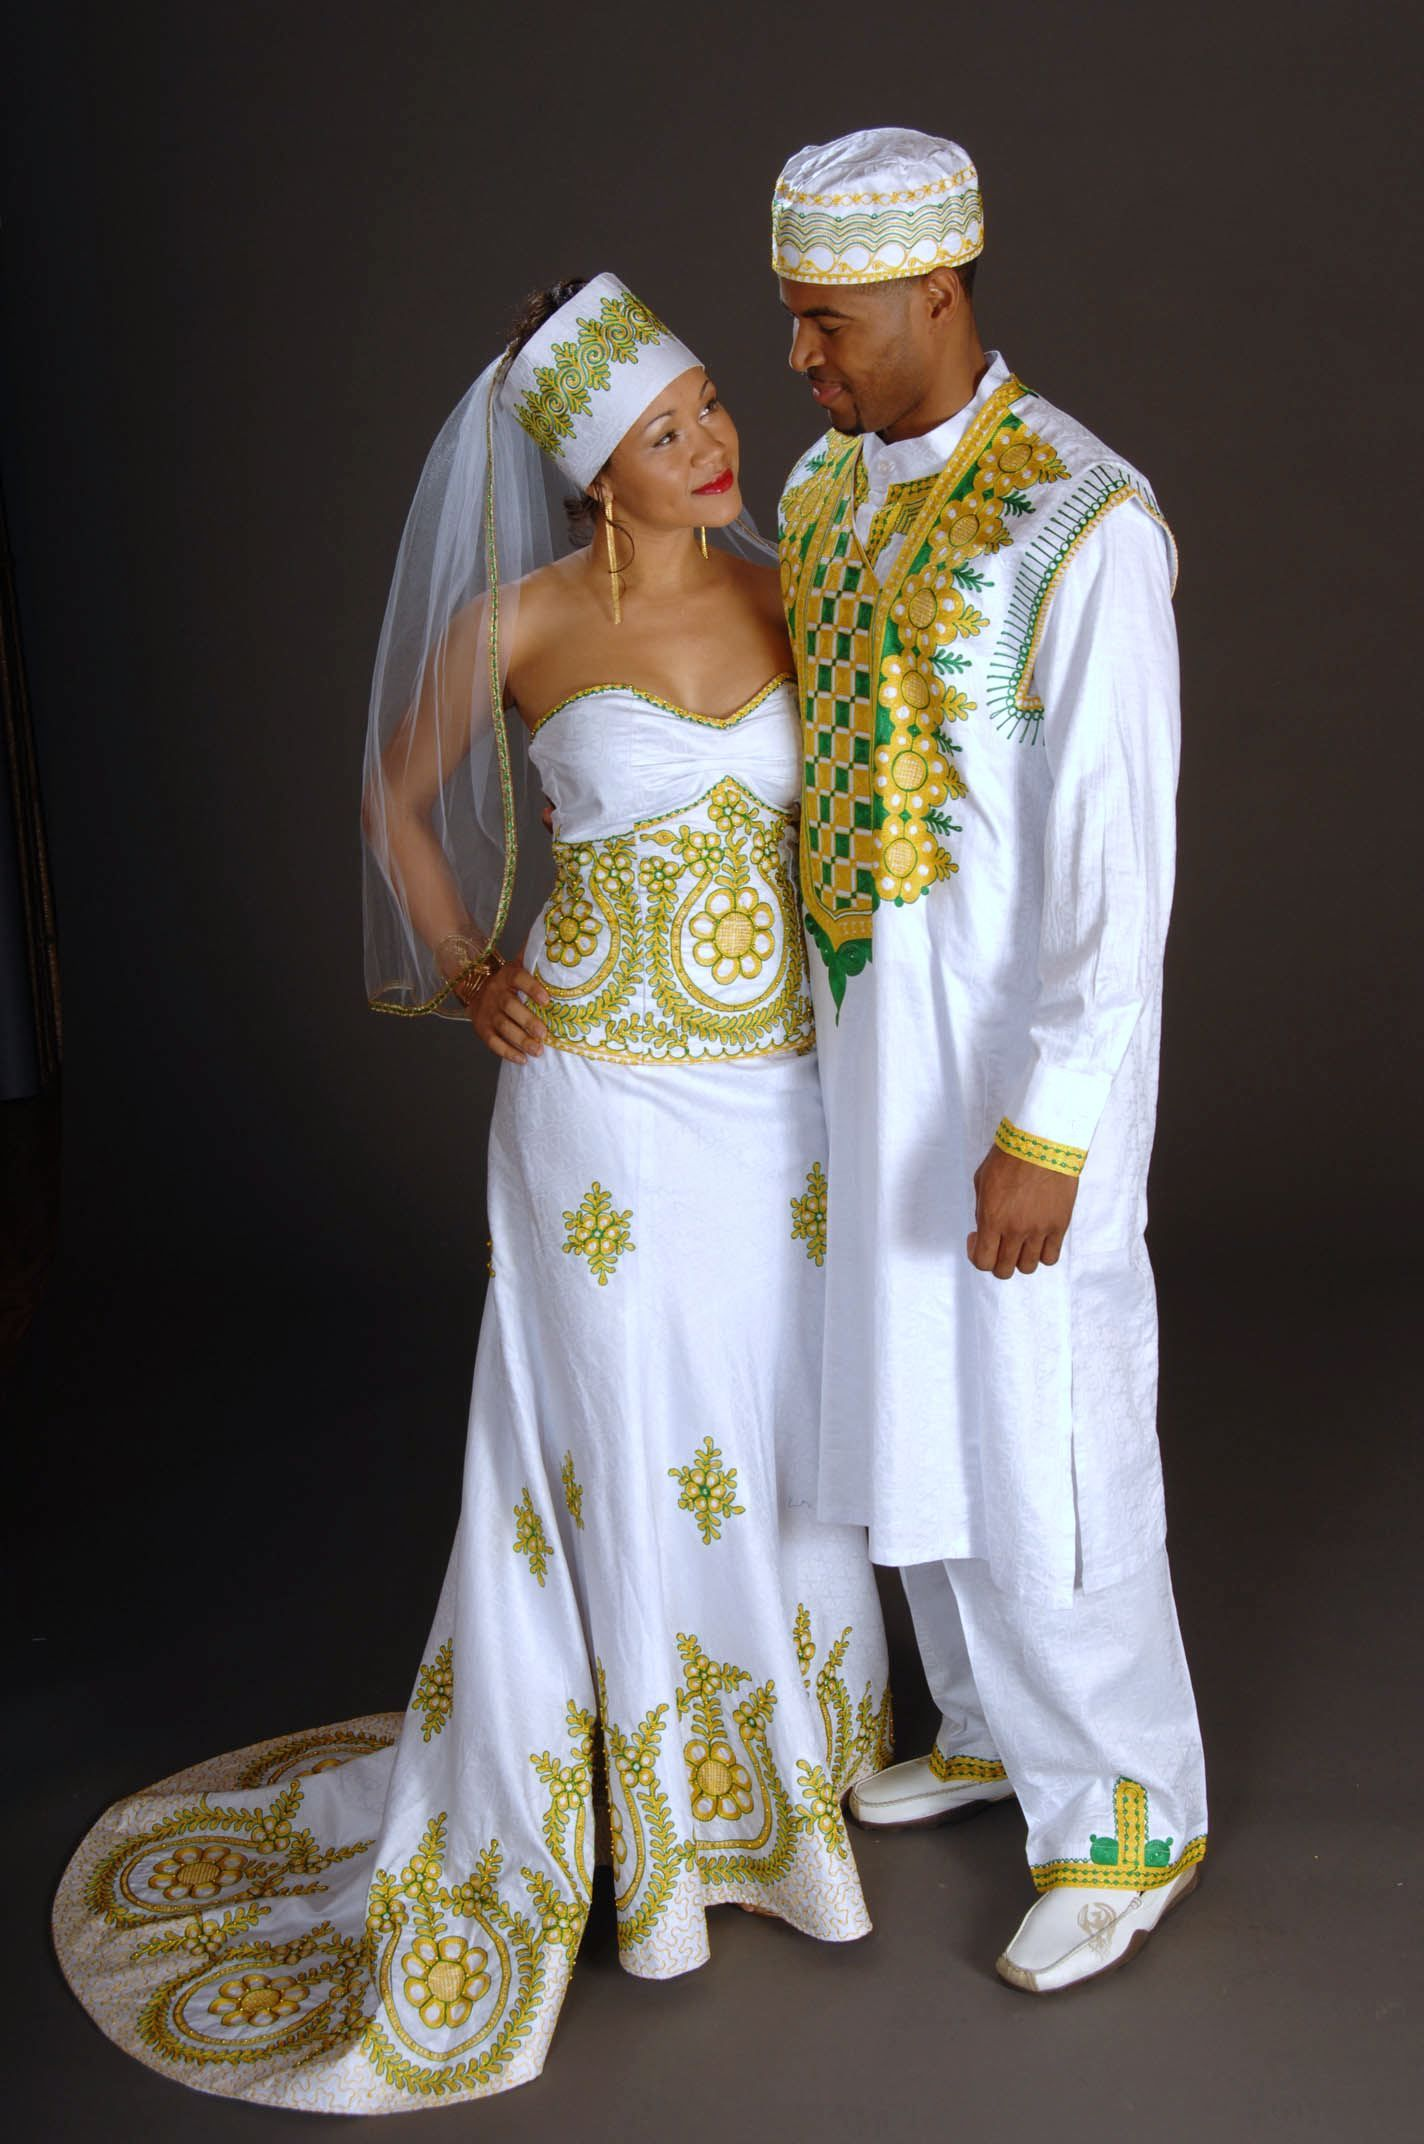 17 beautiful african wedding dresses africans african for African dresses for wedding guests